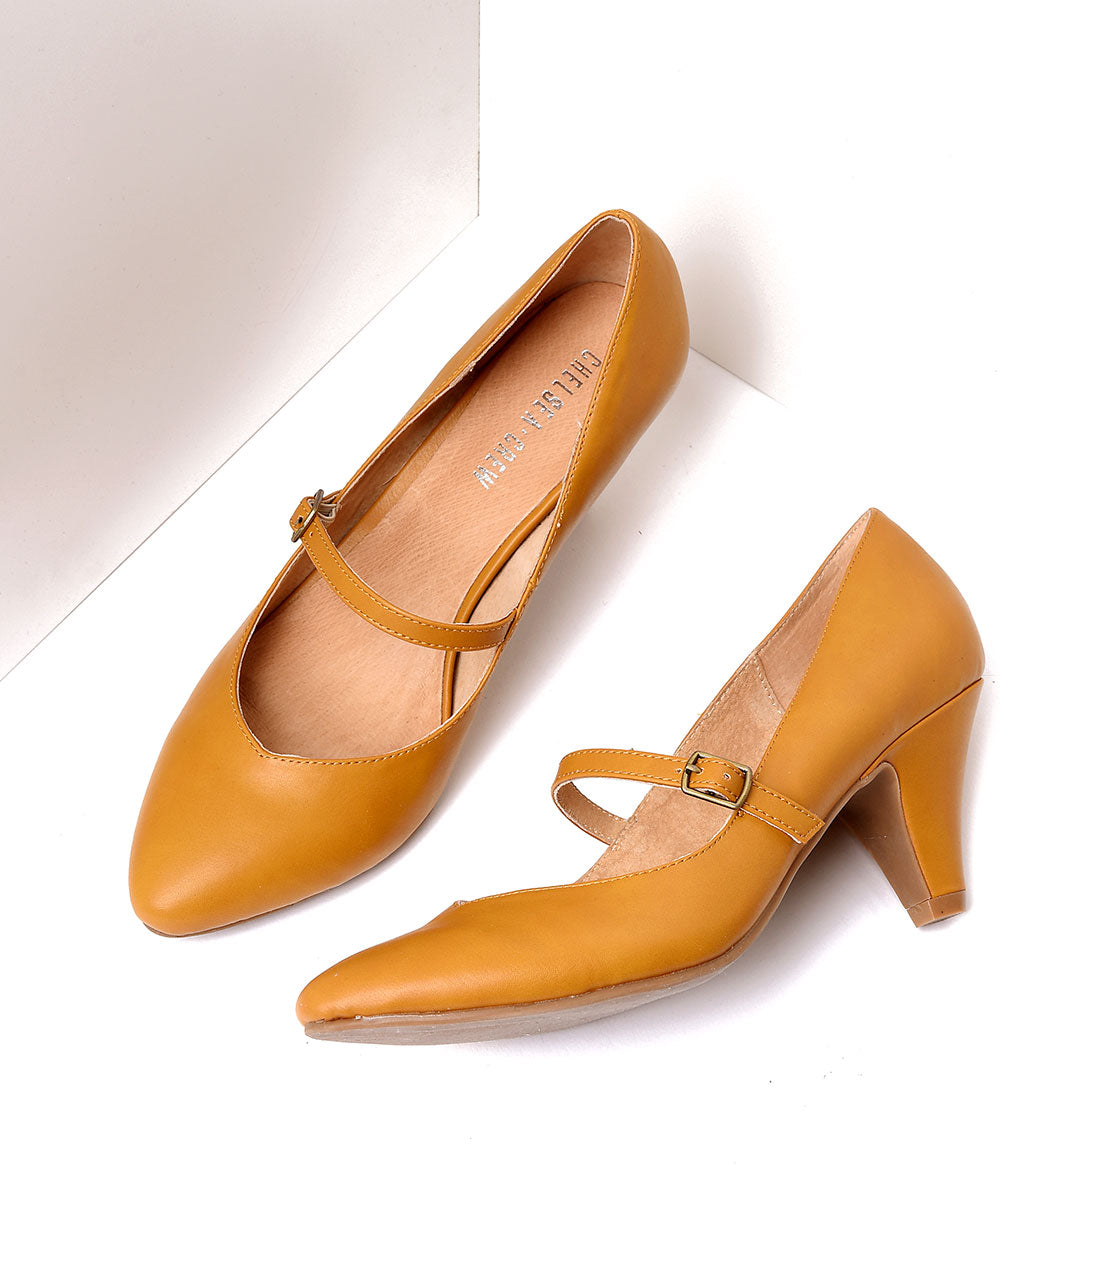 1950s Style Shoes | Heels, Flats, Saddle Shoes Mustard Yellow Leatherette Mary Jane Pumps $62.00 AT vintagedancer.com